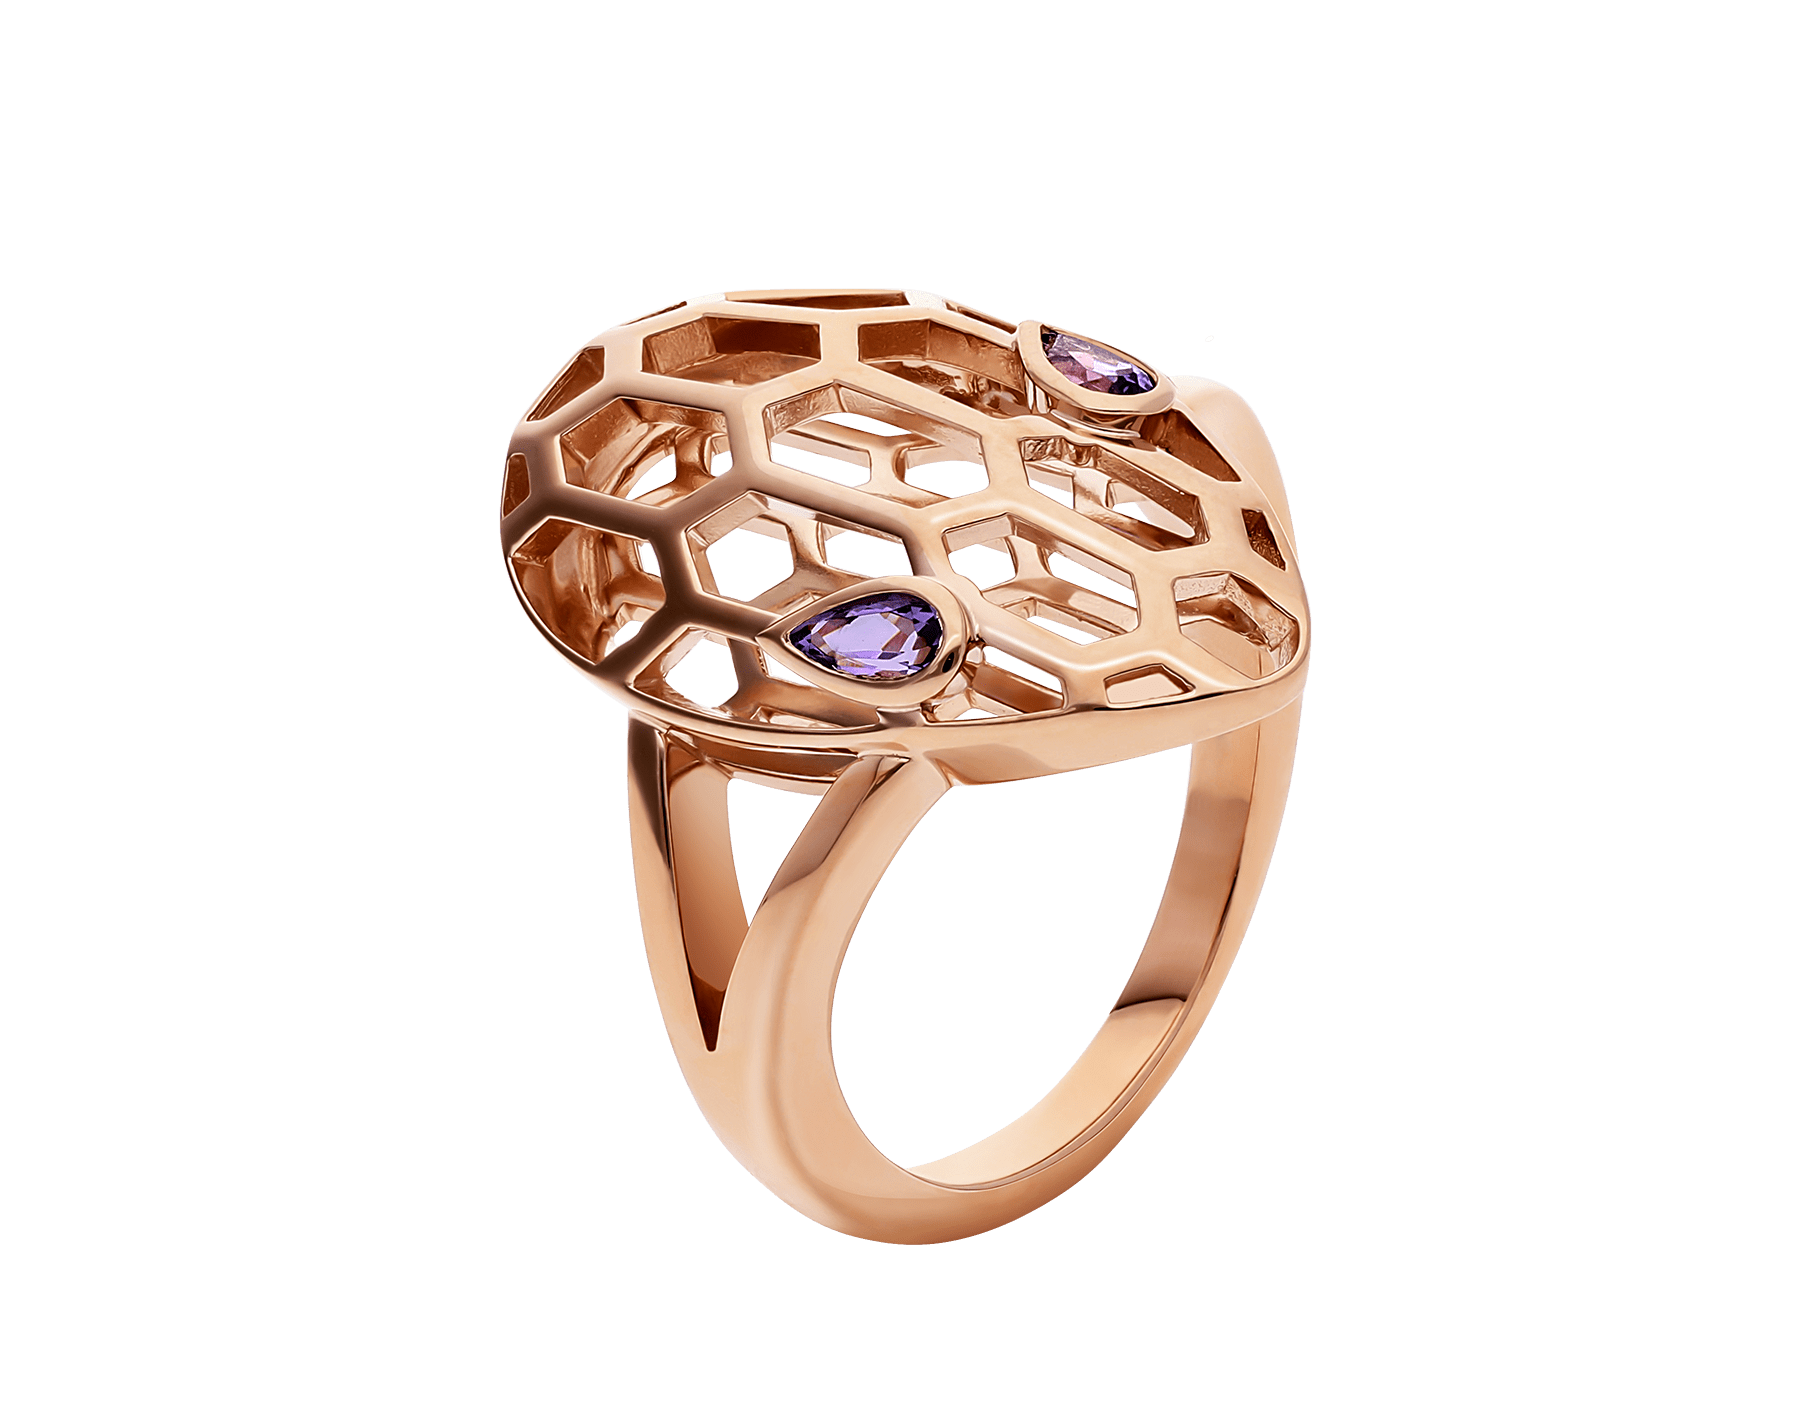 Serpenti ring in 18 kt rose gold, set with amethyst eyes. AN857656 image 1